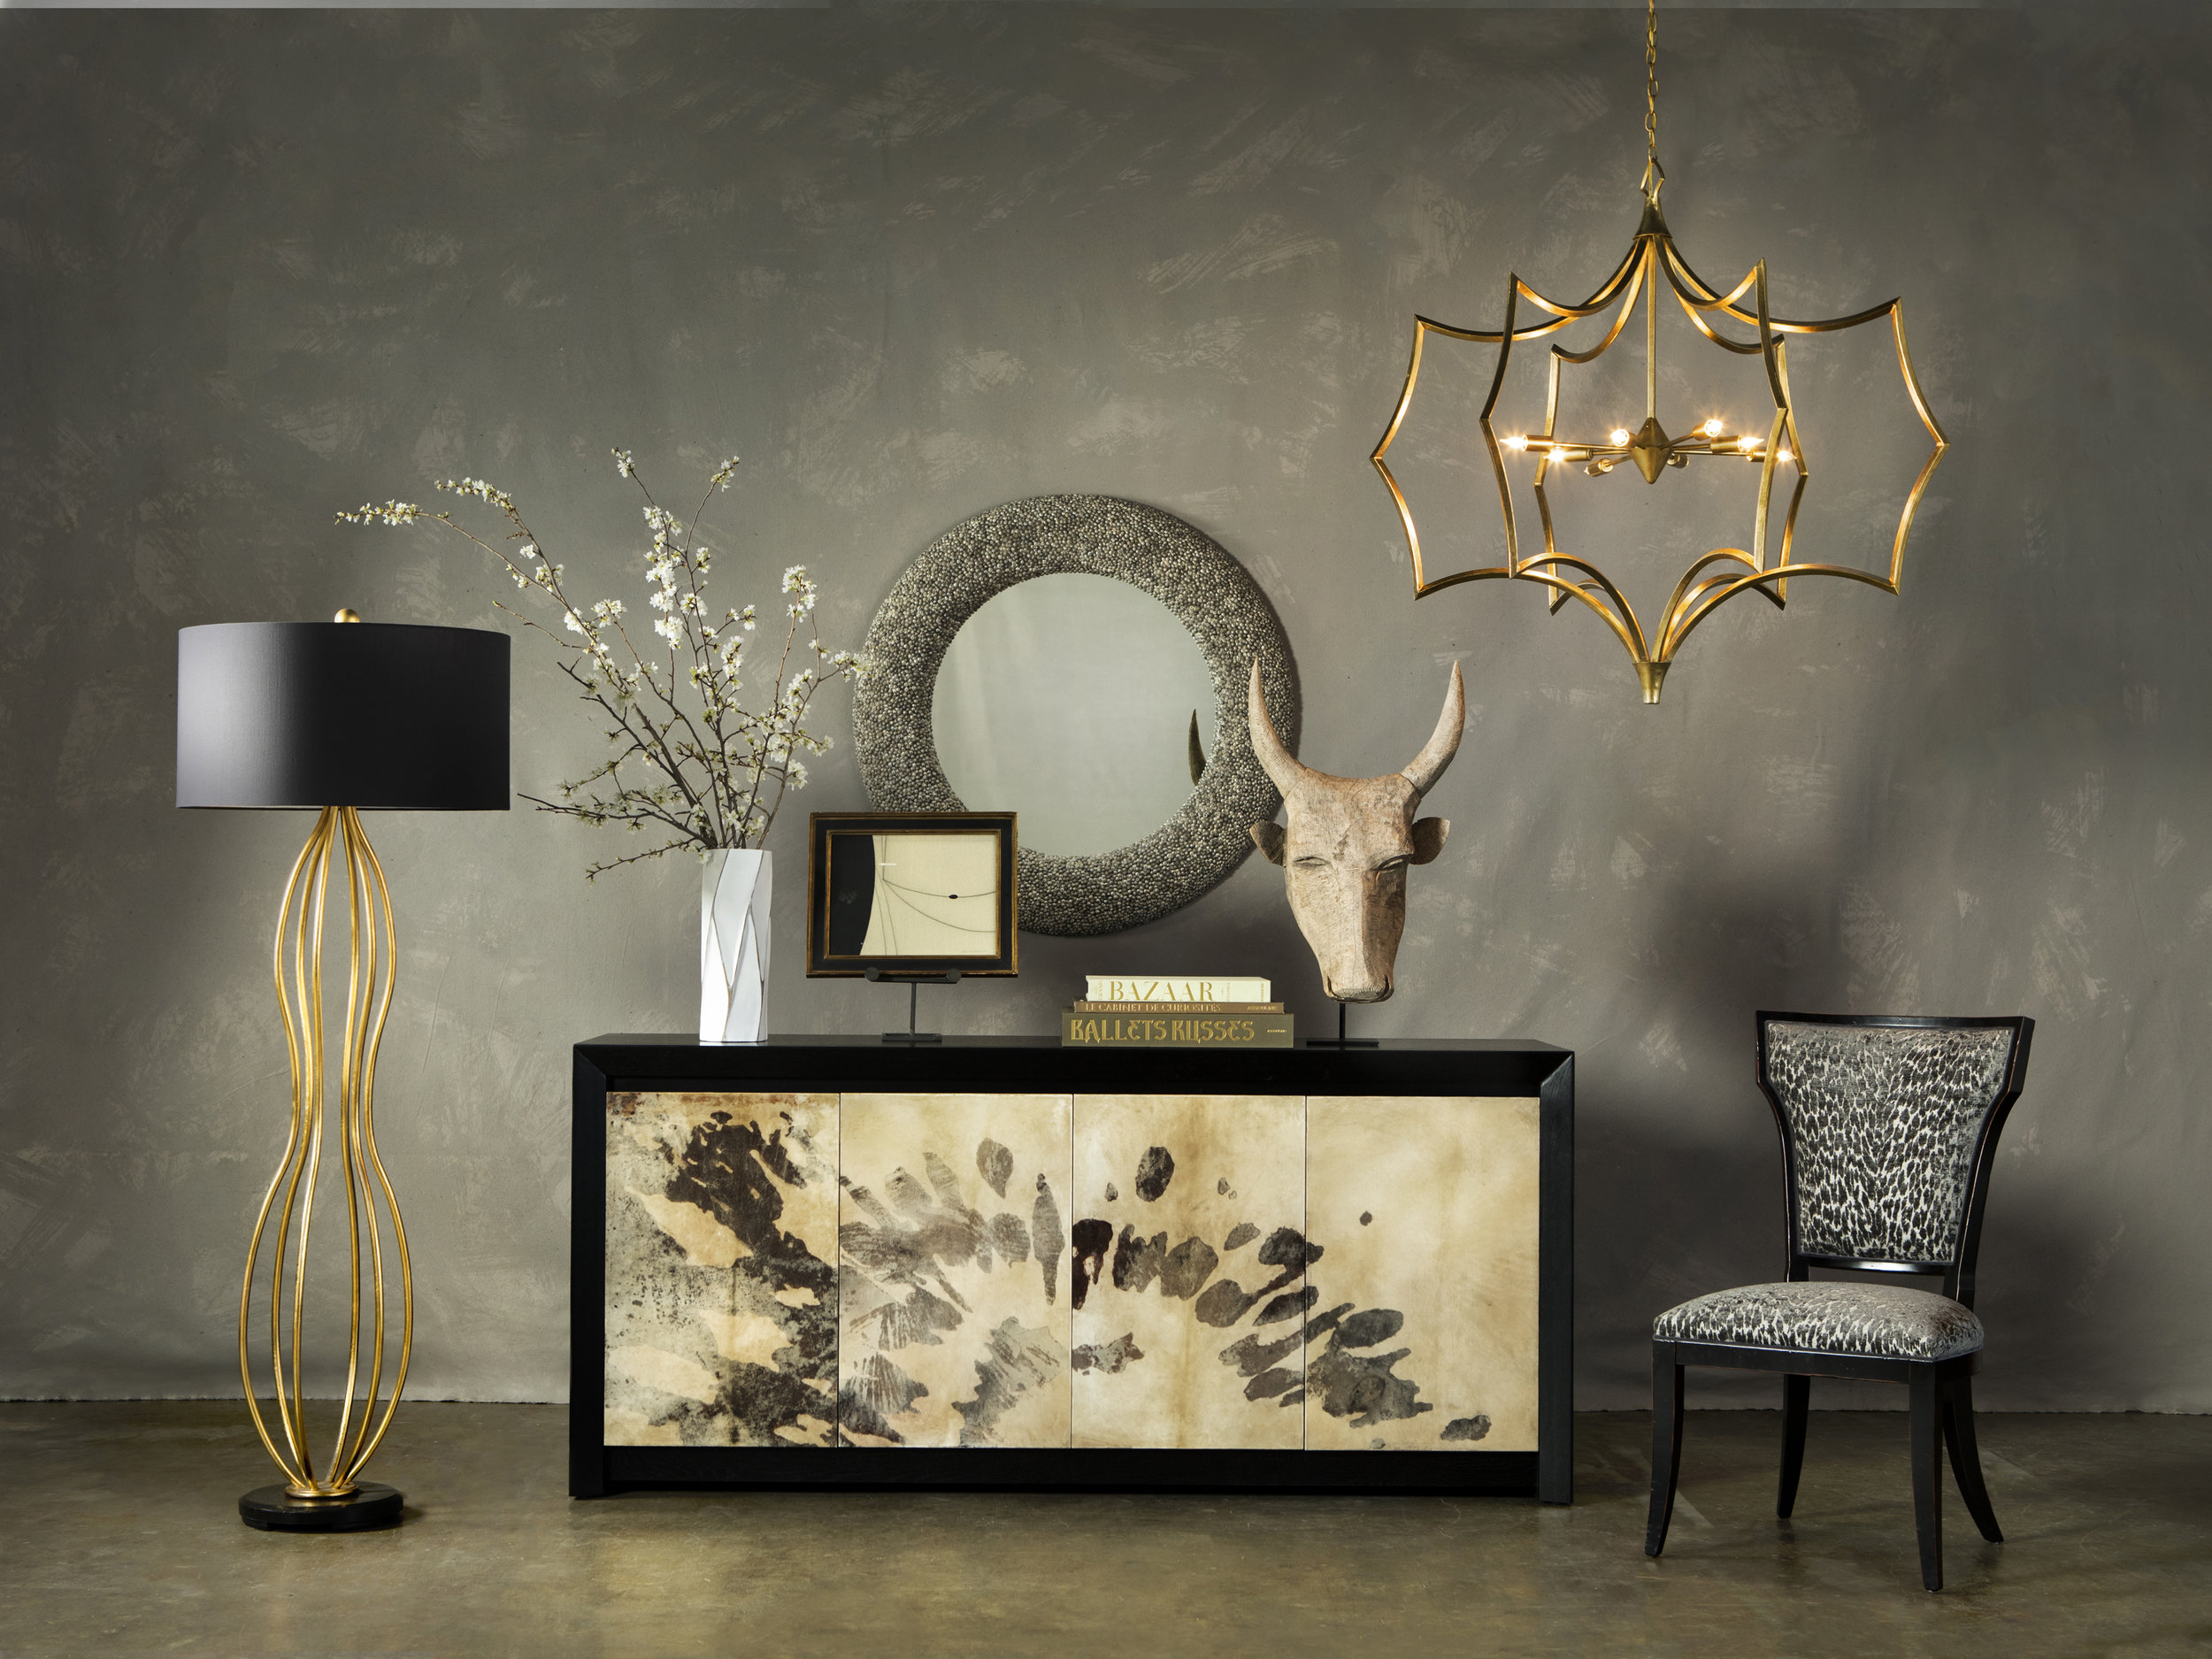 Karlson Credenza featured.  Images courtesy of Currey&Company.